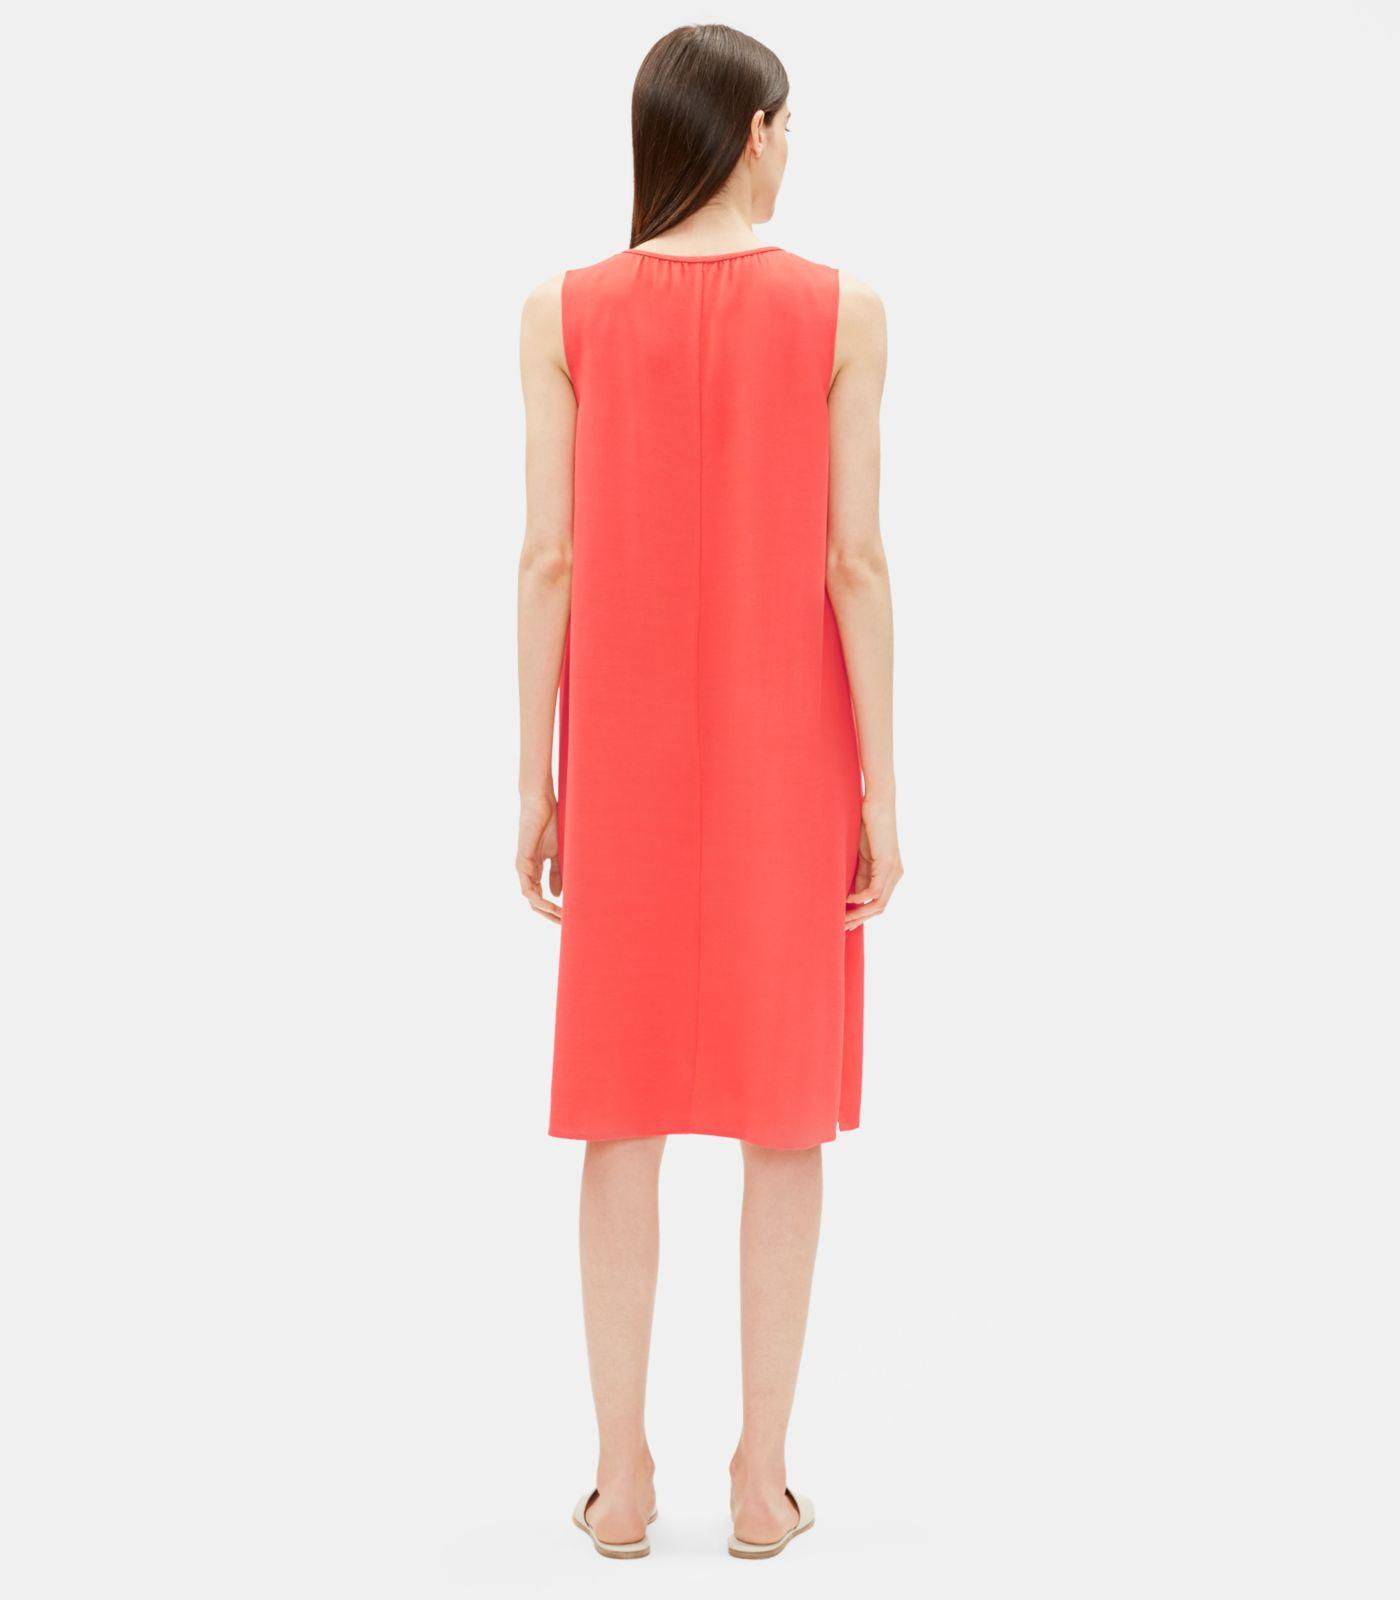 3ed5600b344 Lyst - Eileen Fisher Viscose Crepe Round Neck Dress in Red